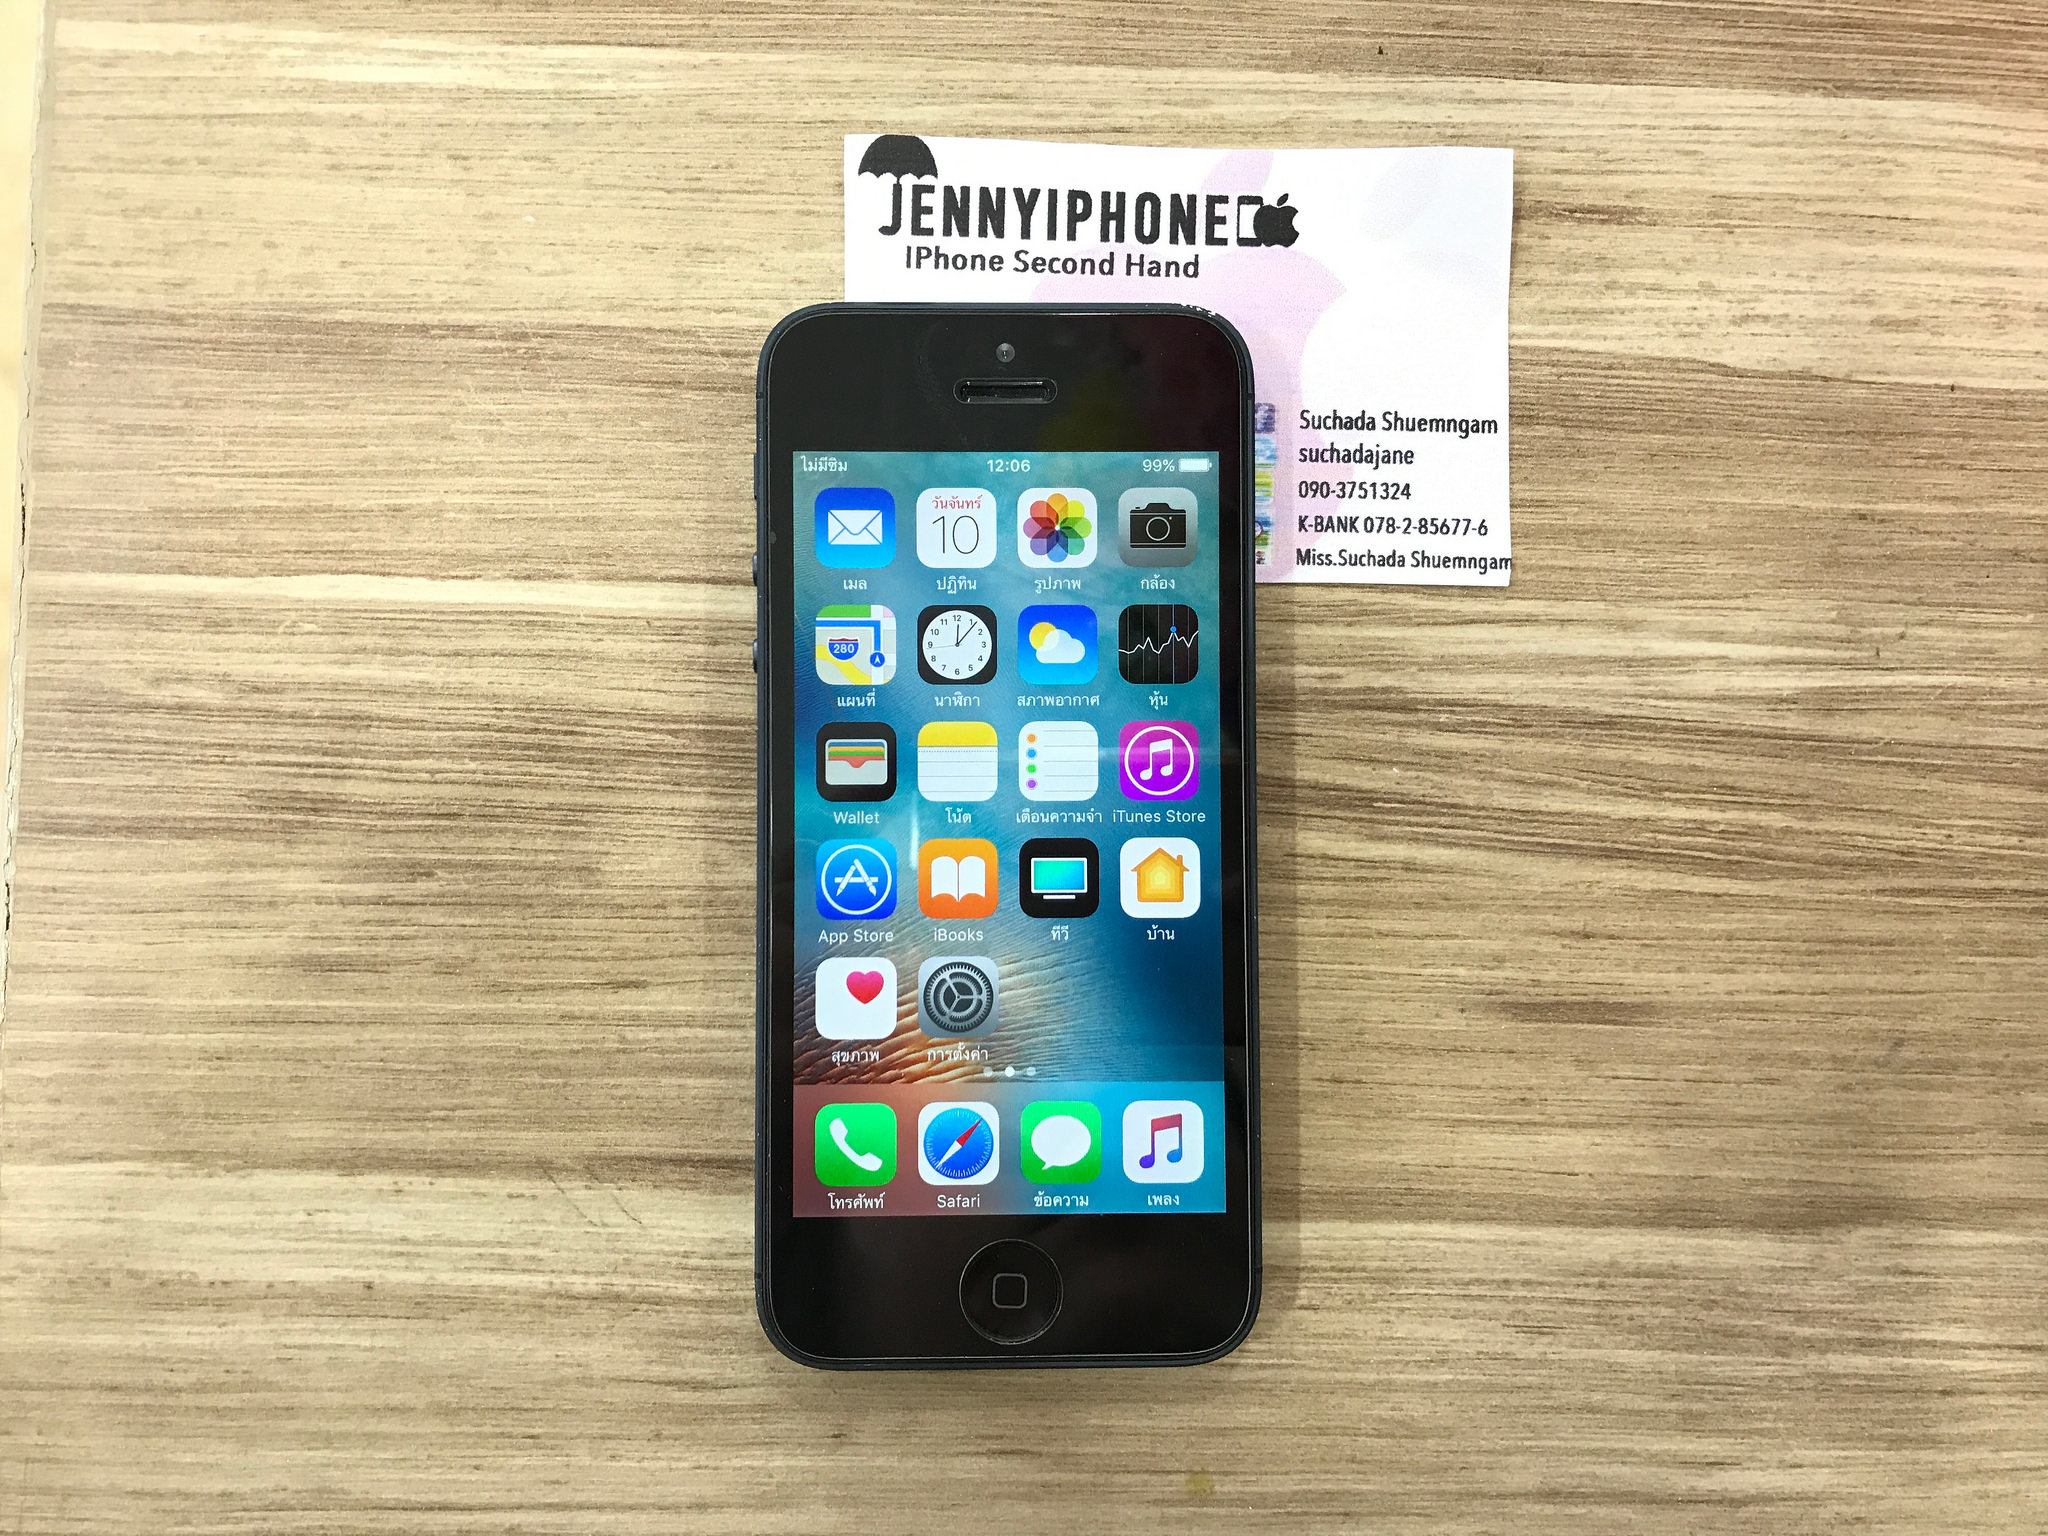 iPhone5 16 Gb Black สีดำ